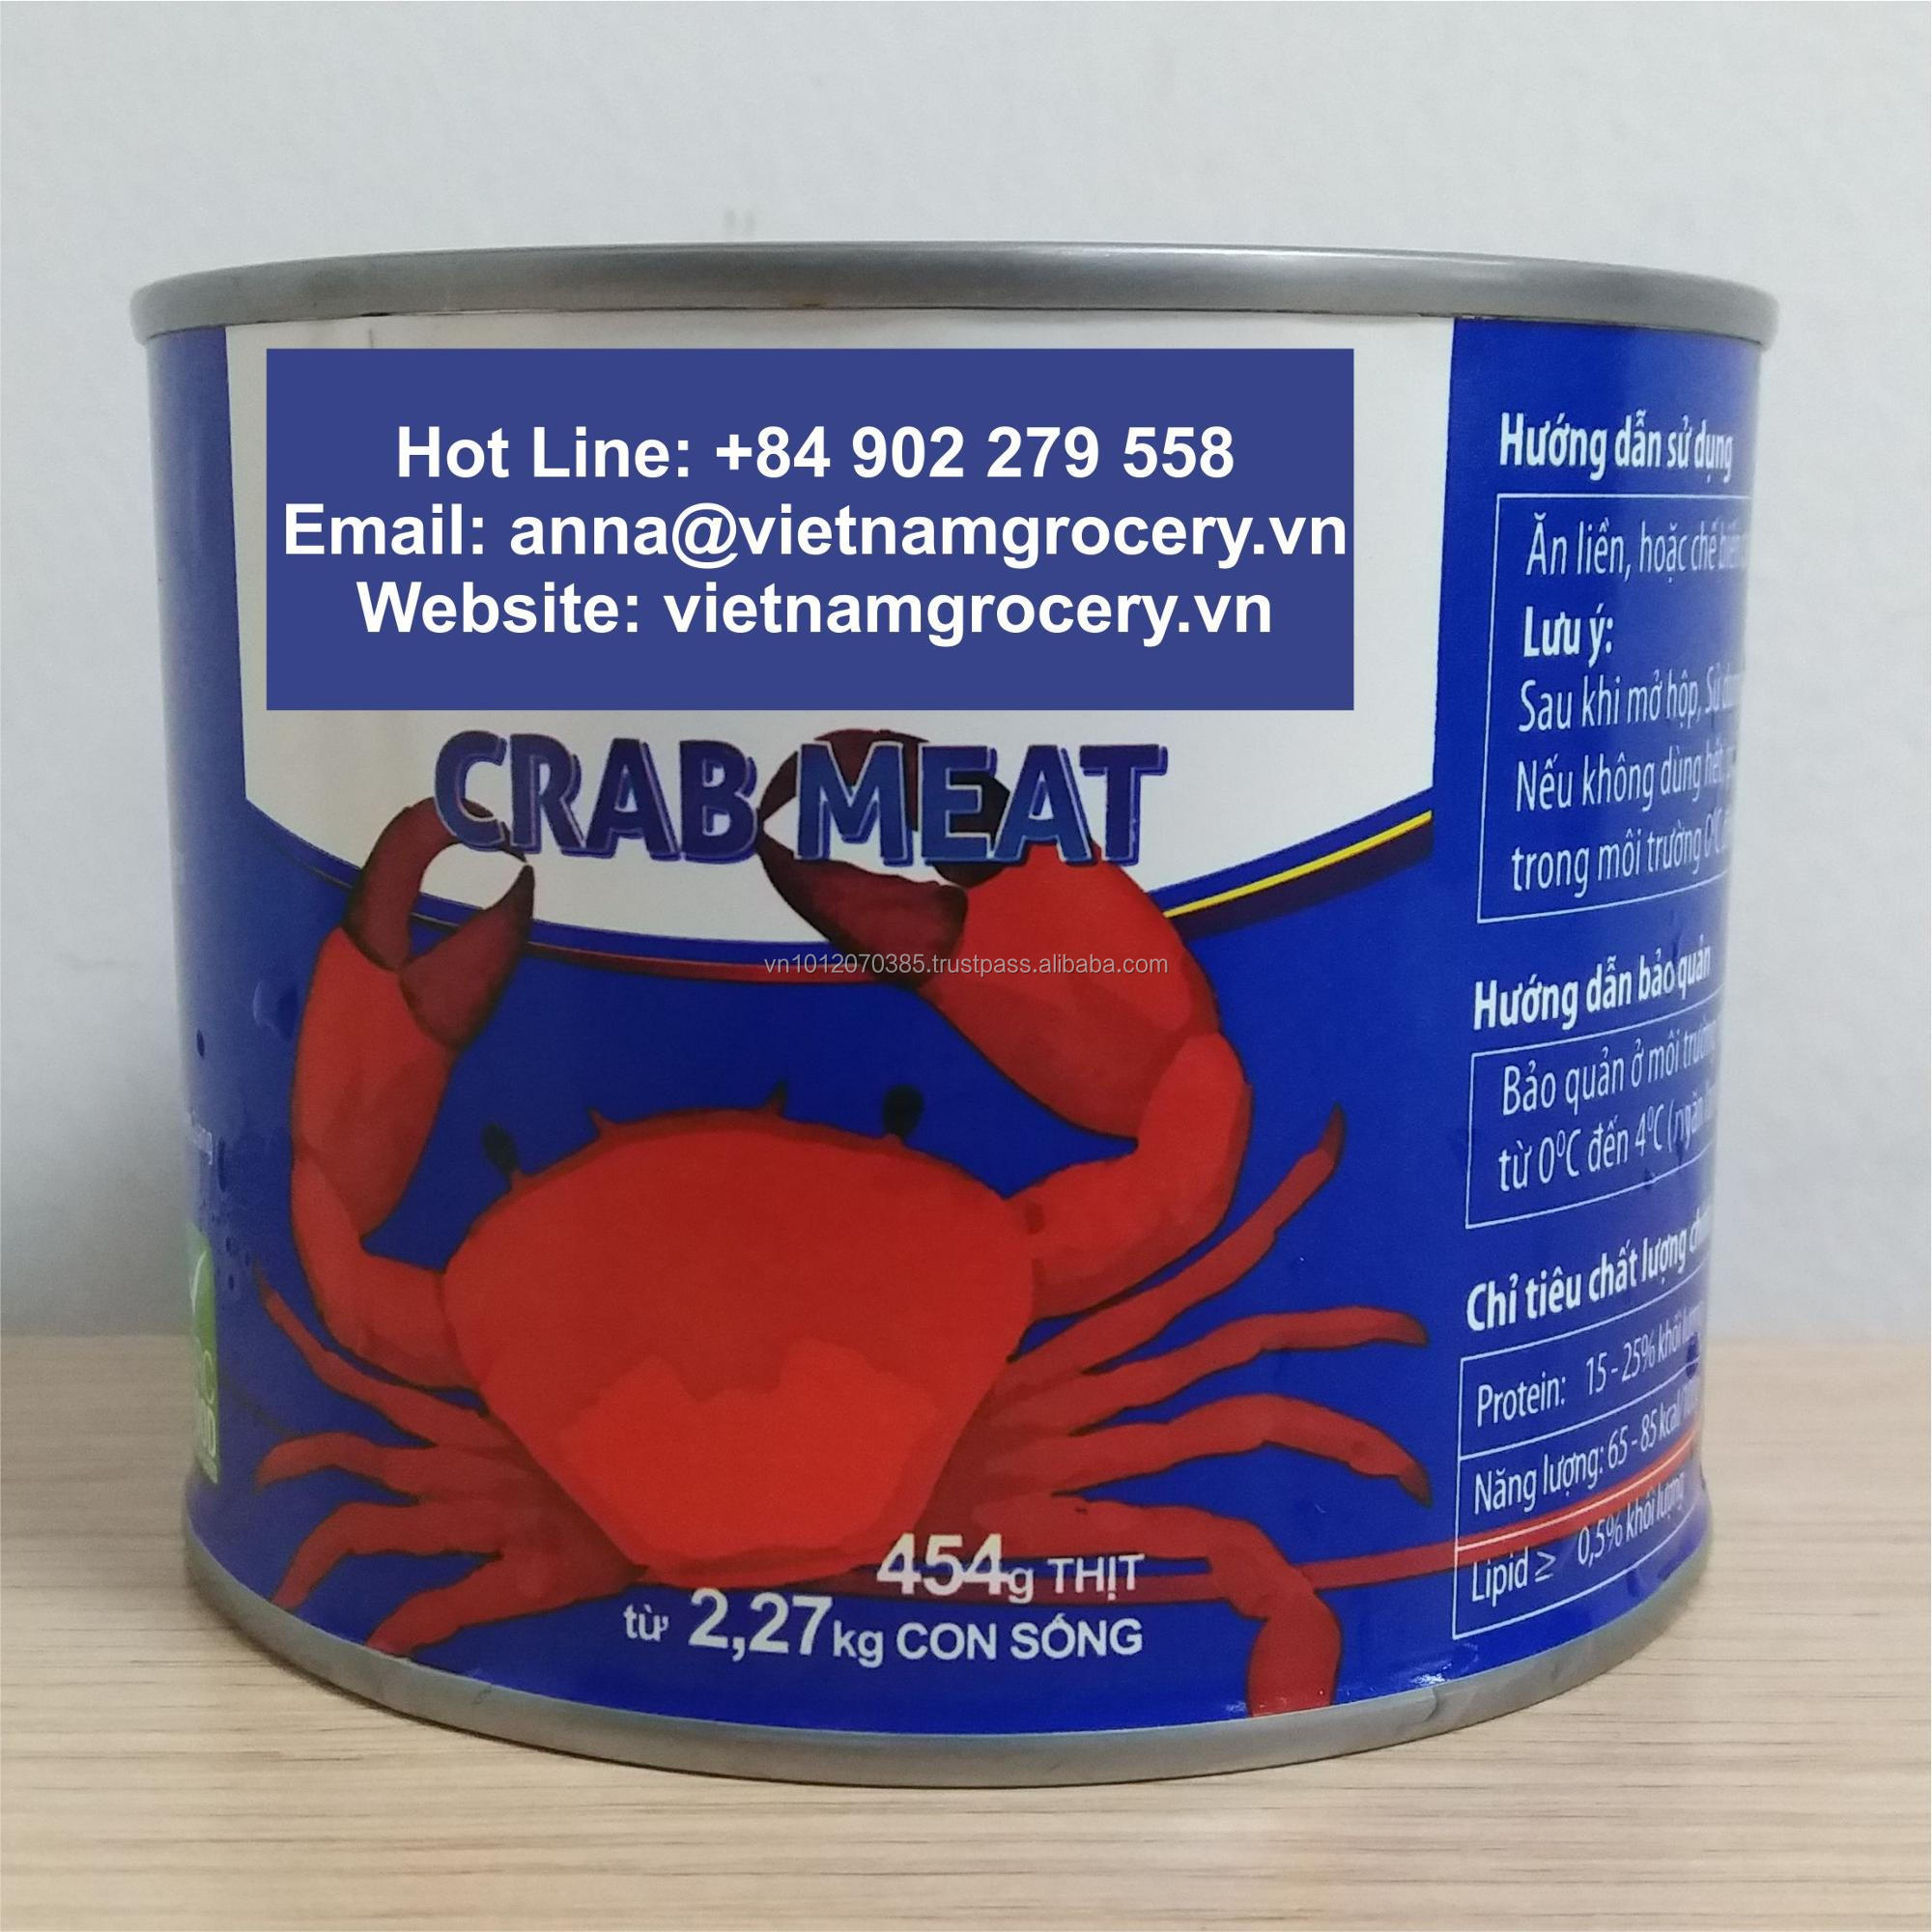 Natural Pasteurized Canned Crab Meat from Vietnam - 454gr